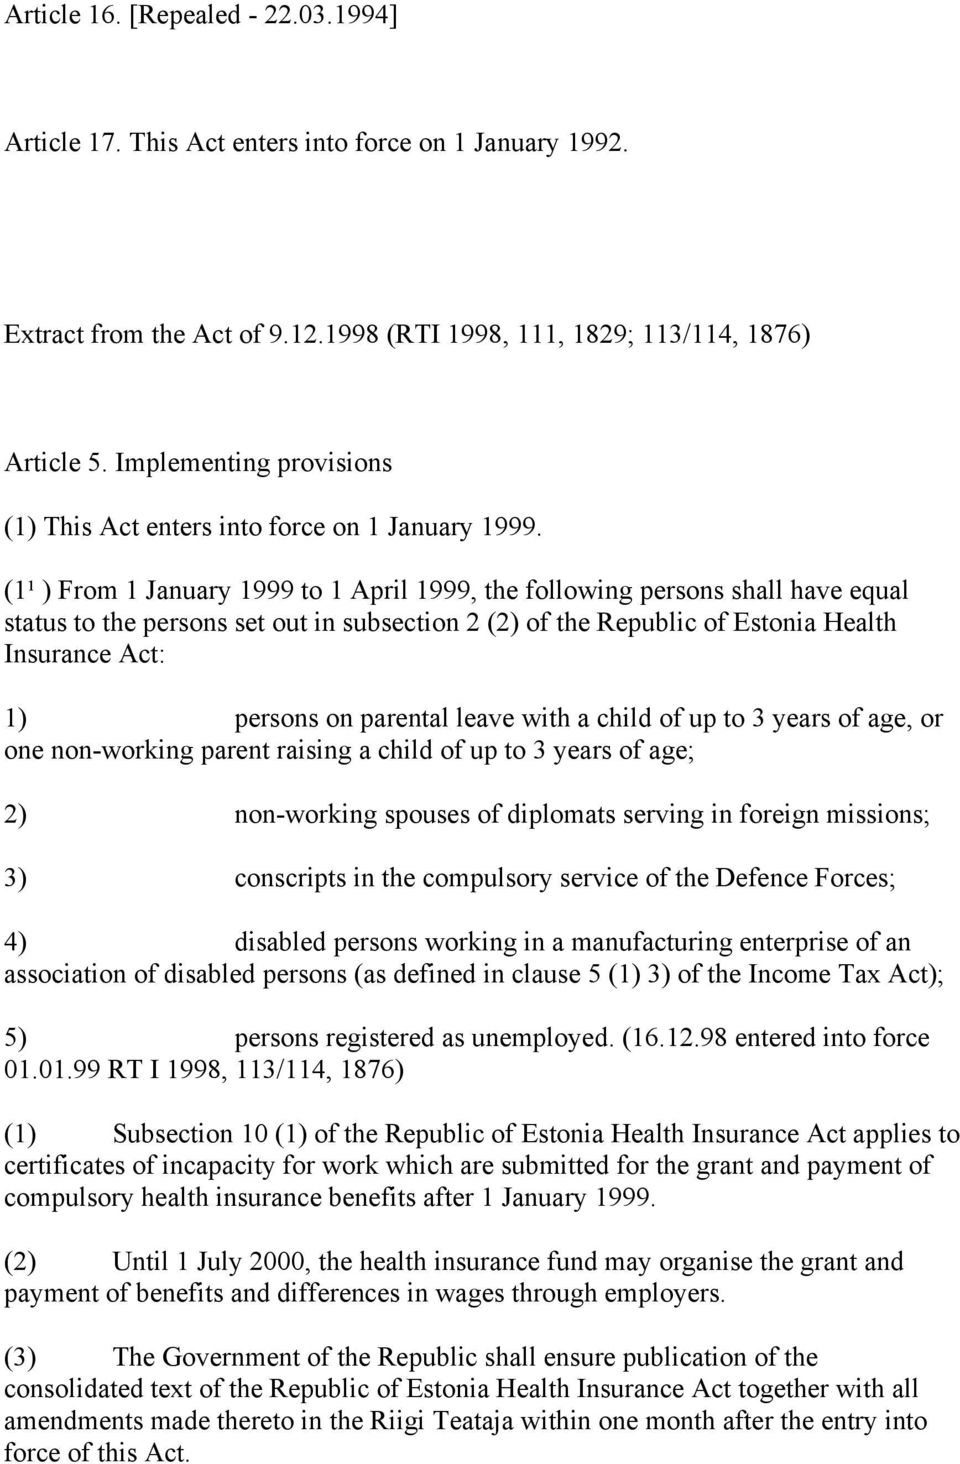 (1¹ ) From 1 January 1999 to 1 April 1999, the following persons shall have equal status to the persons set out in subsection 2 (2) of the Republic of Estonia Health Insurance Act: 1) persons on